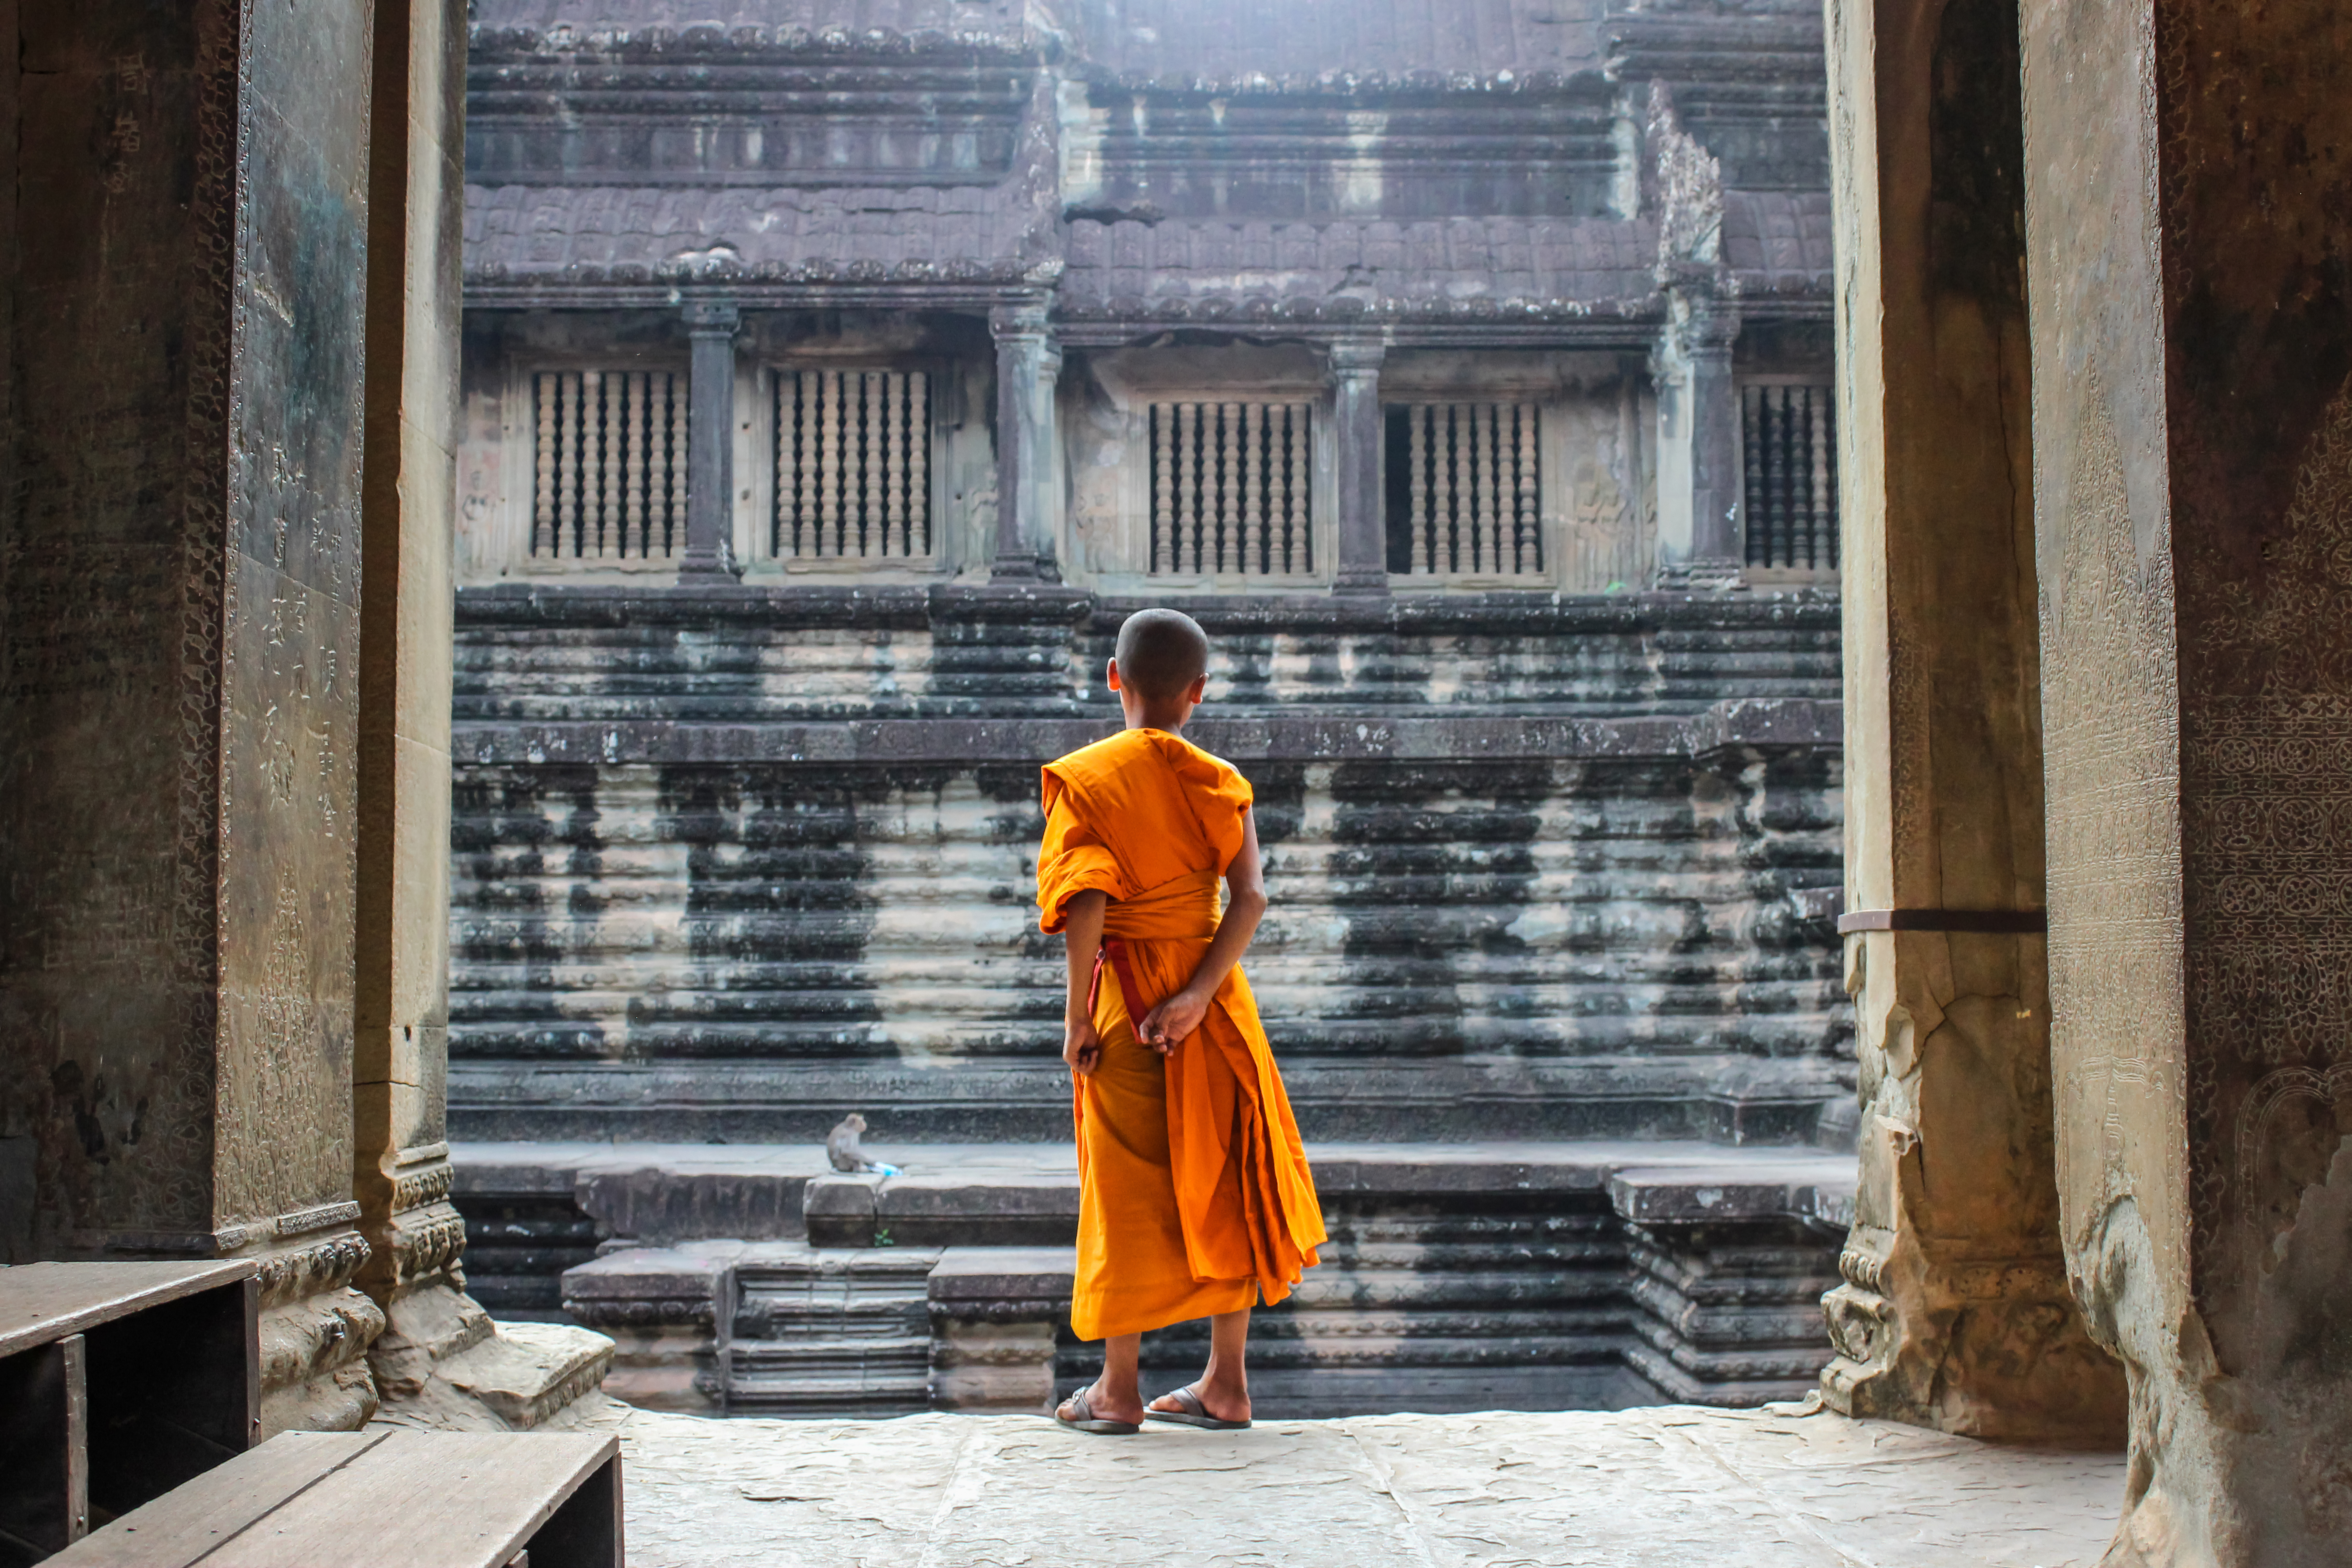 a young monk stands alone in a temple watching a monkey in the distance